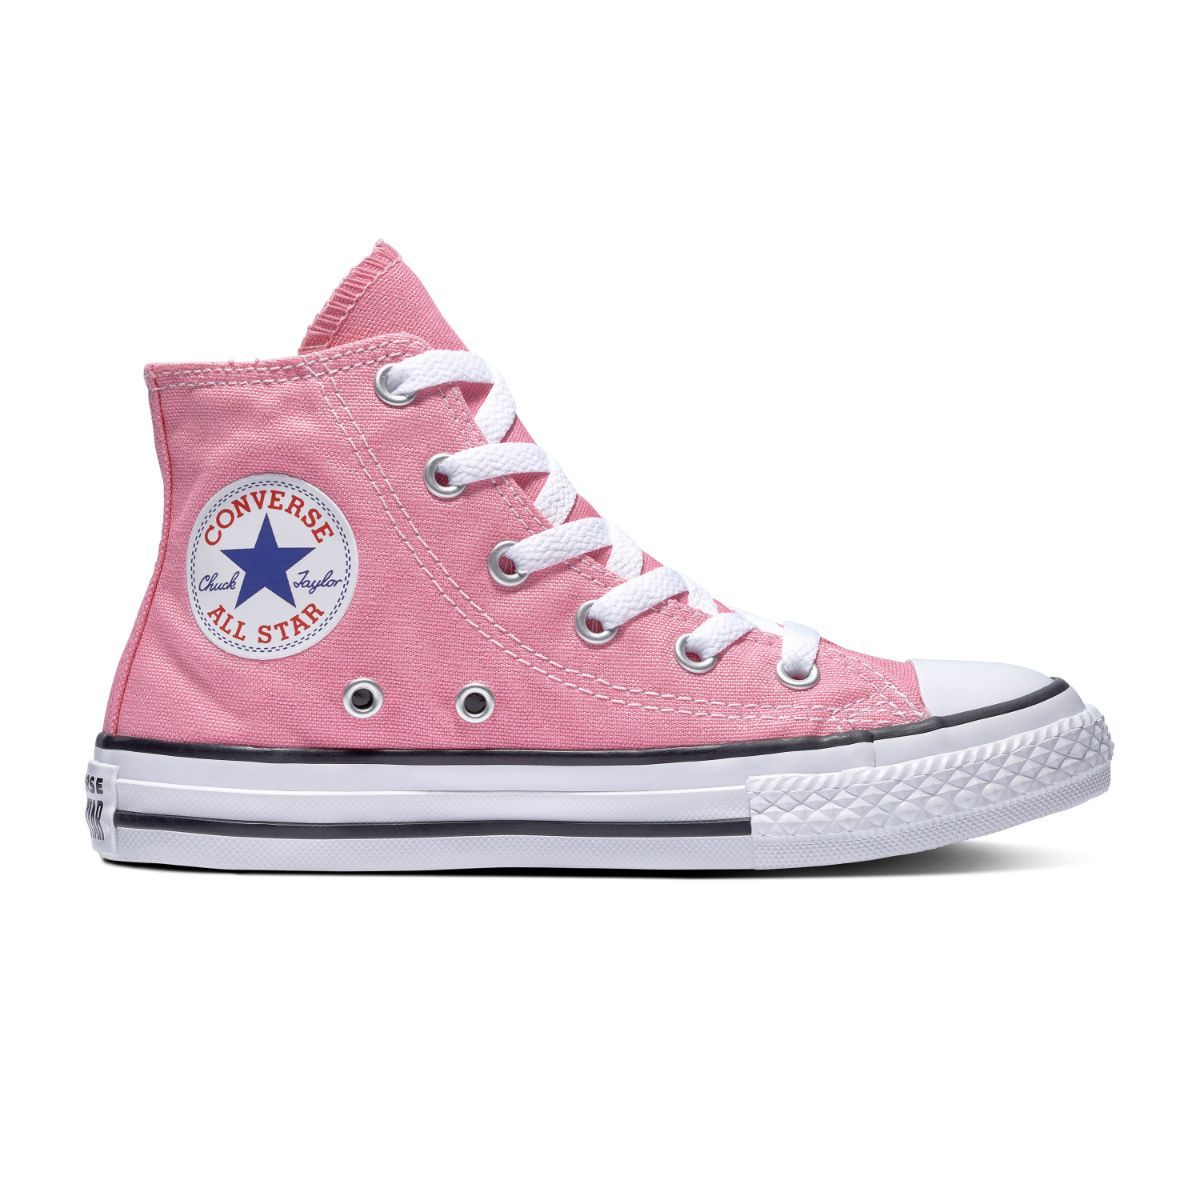 Chuck Taylor All Star Pink High Top